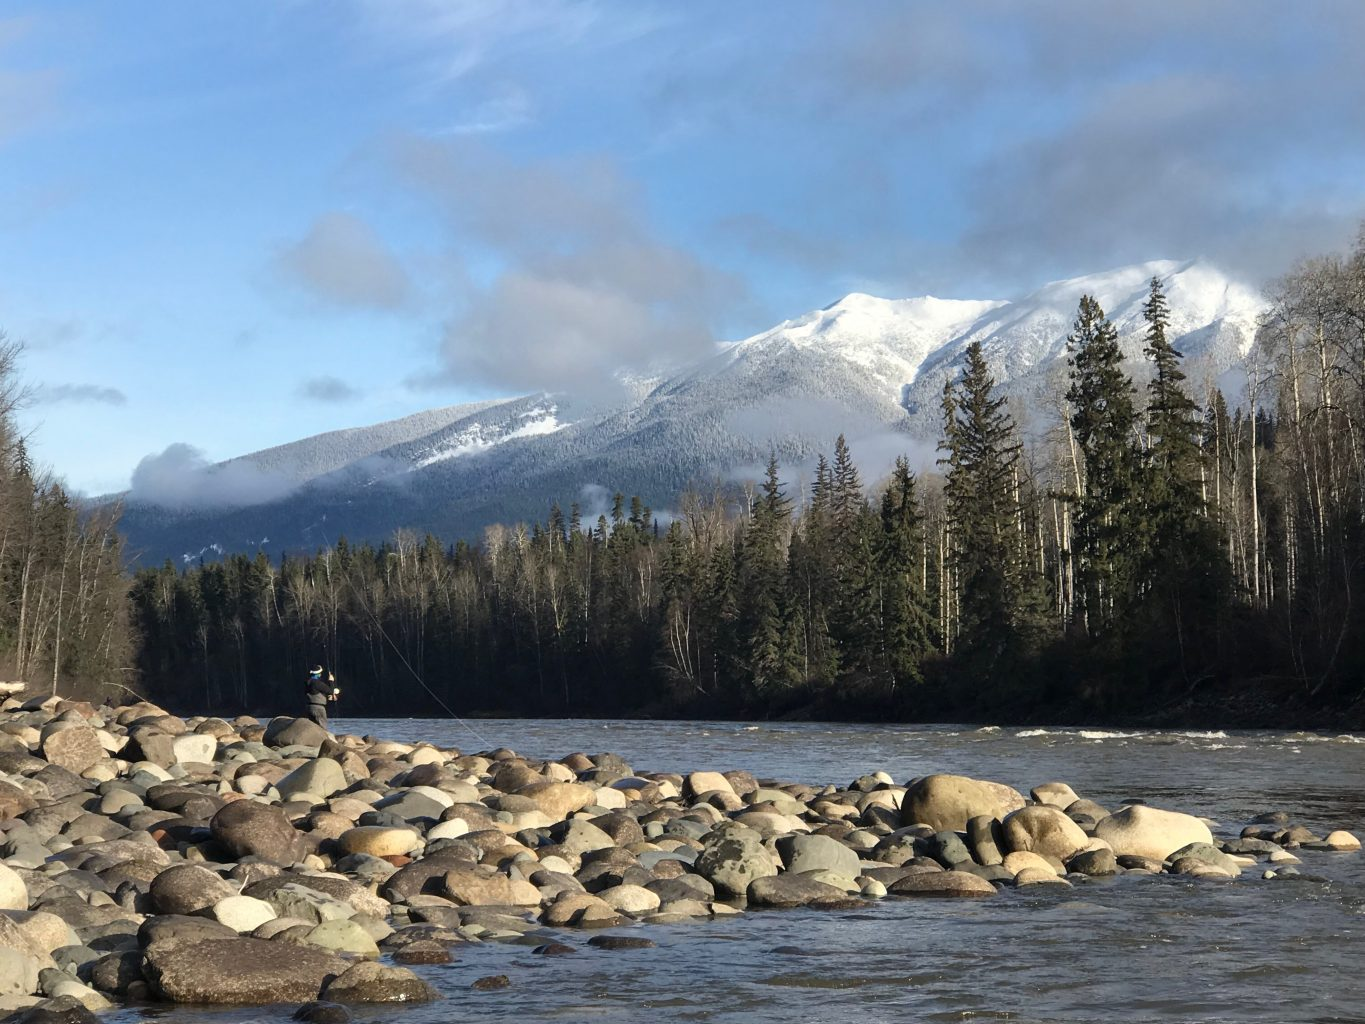 Spey casting on the Bulkley River